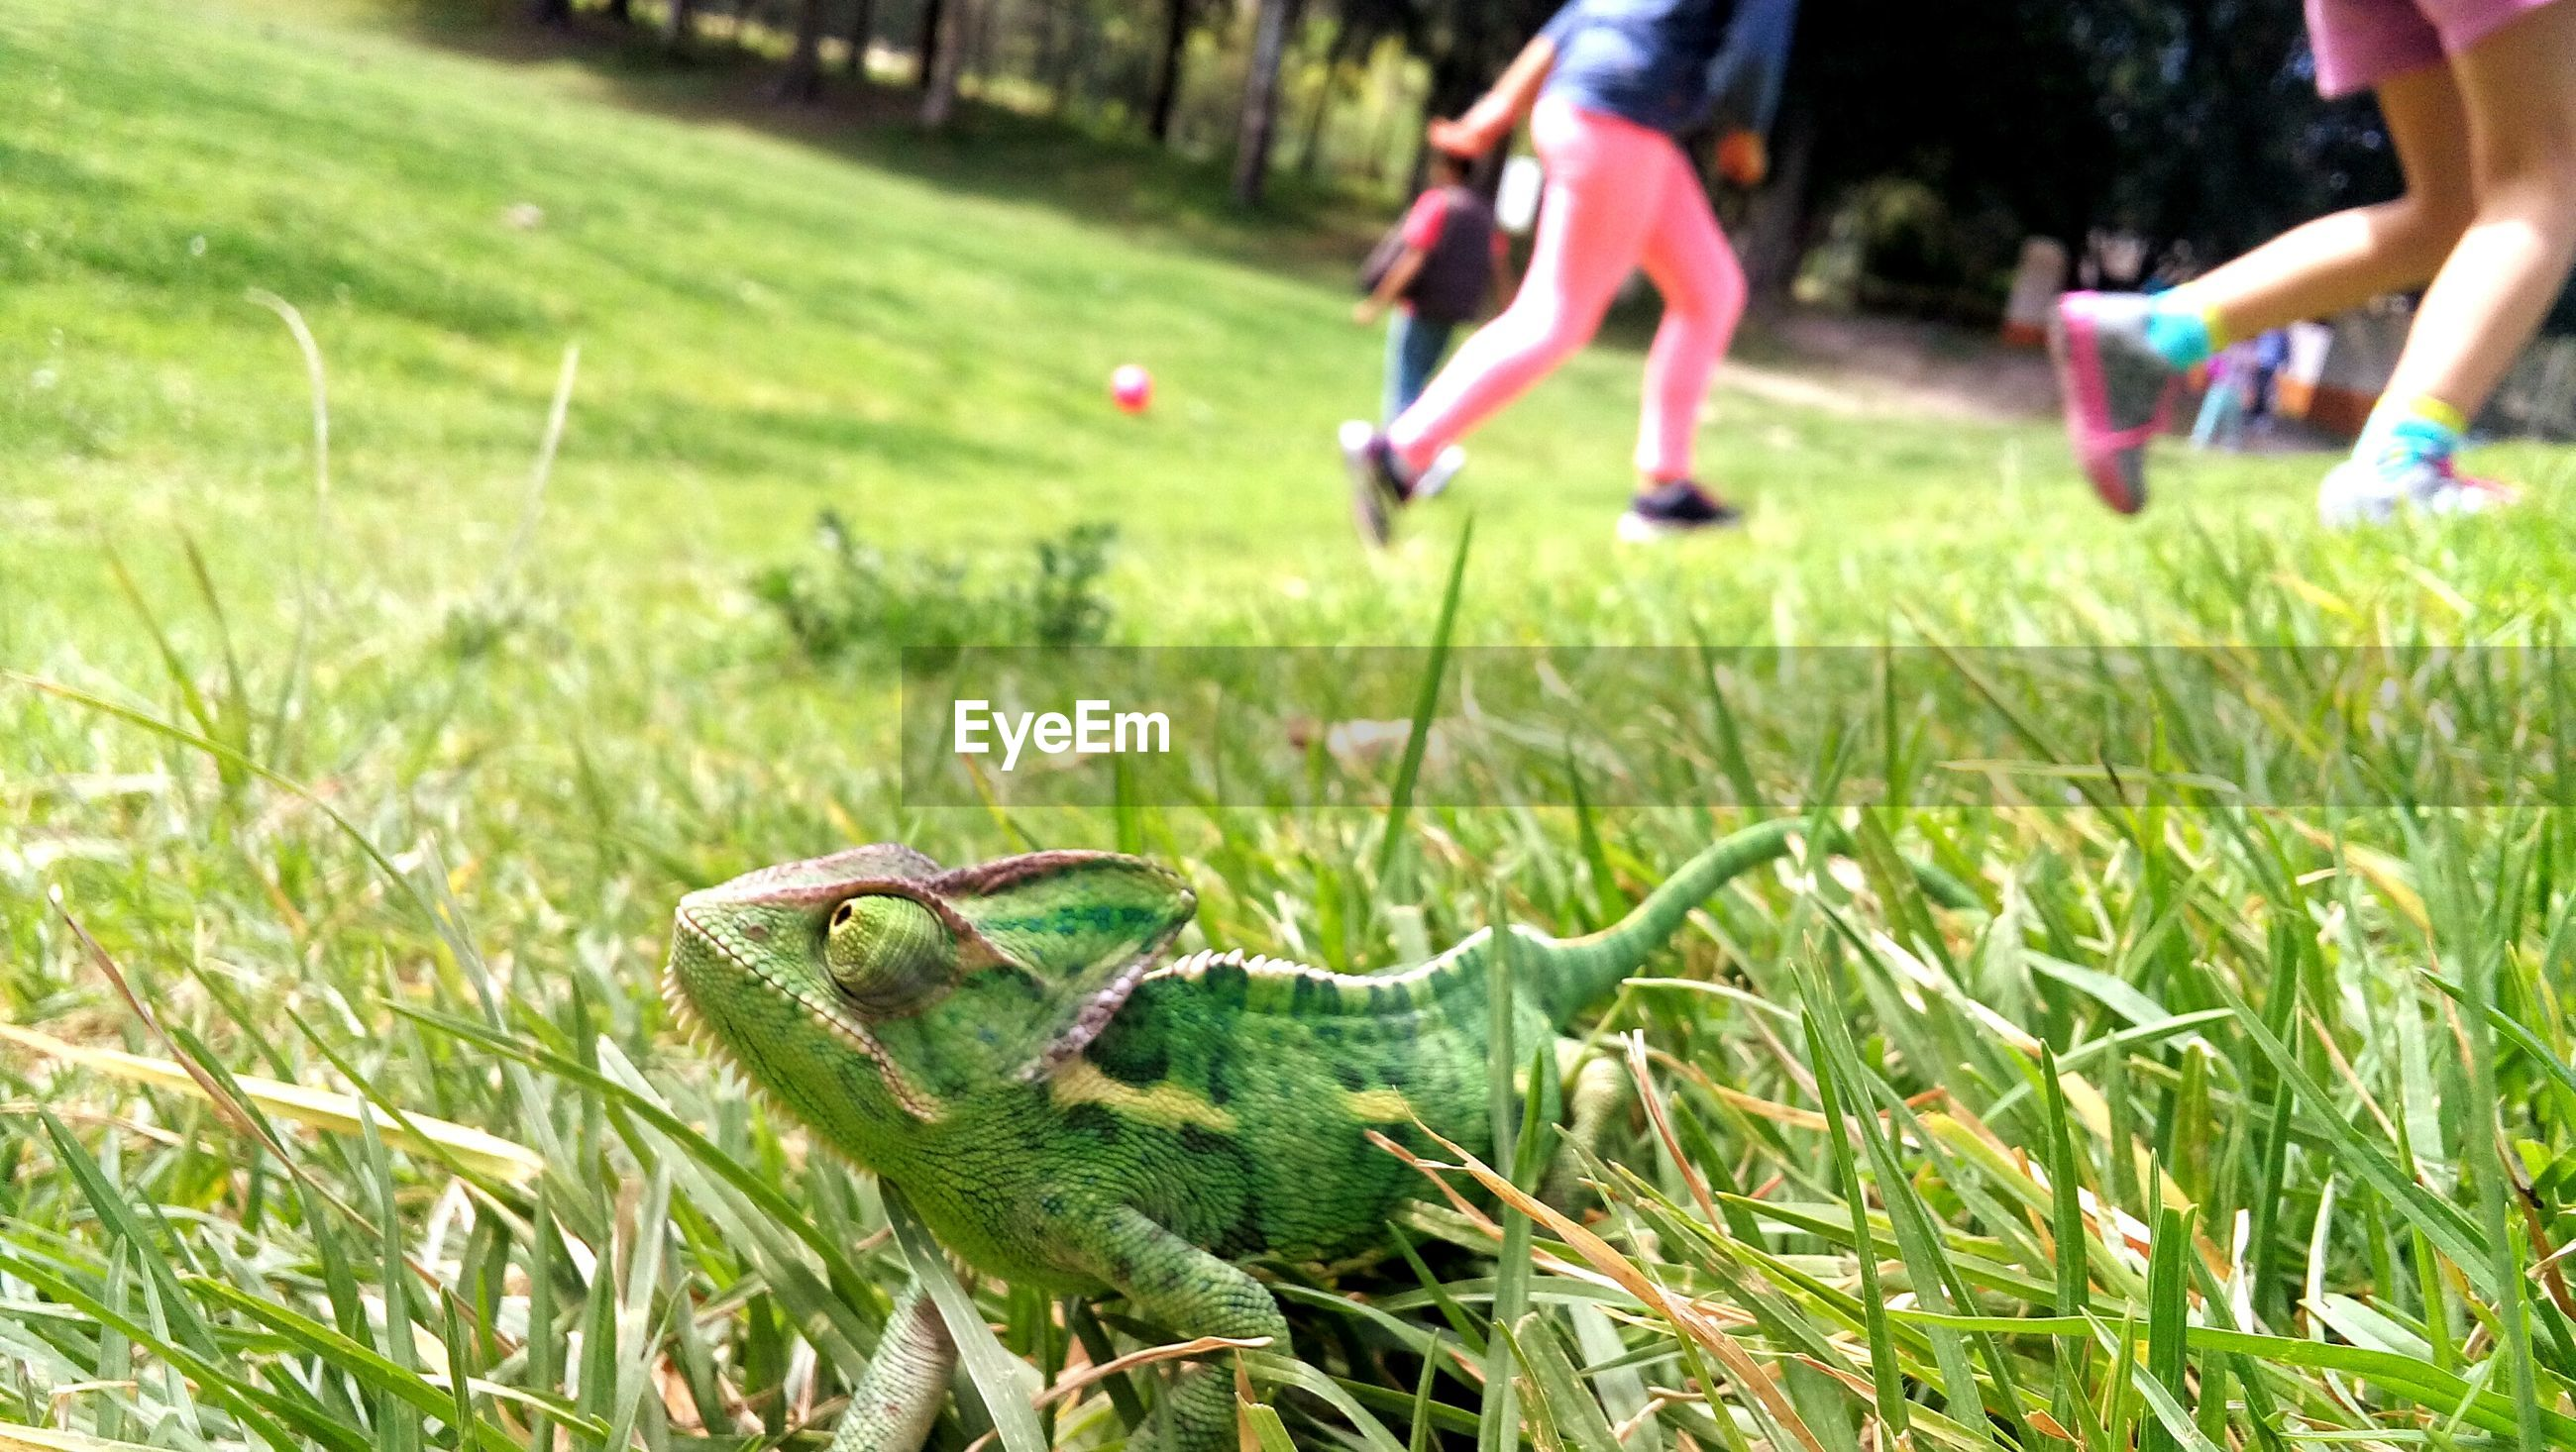 Close-up of chameleon on grass in park